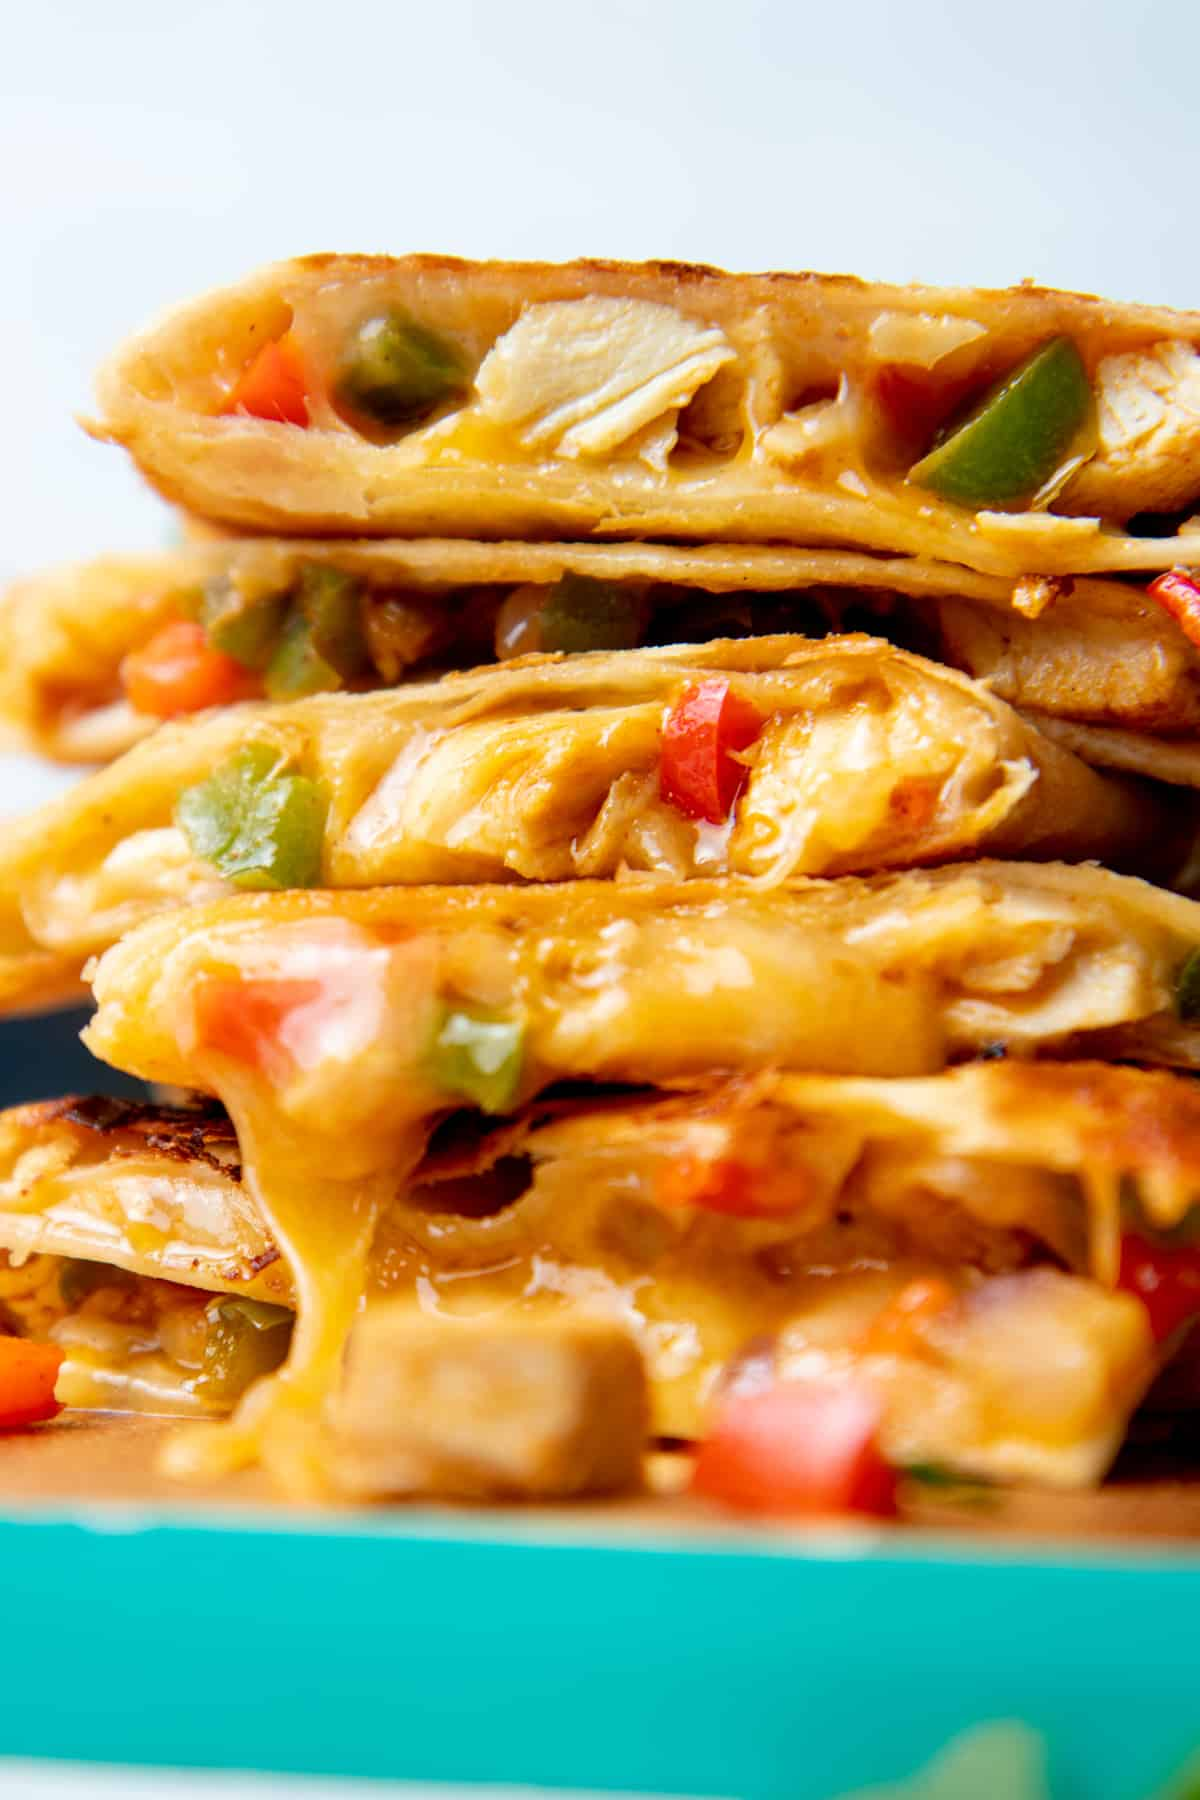 Stack of quesadilla slices filled with chicken, peppers, and cheese. The stack sits on a teal-edged cutting board.